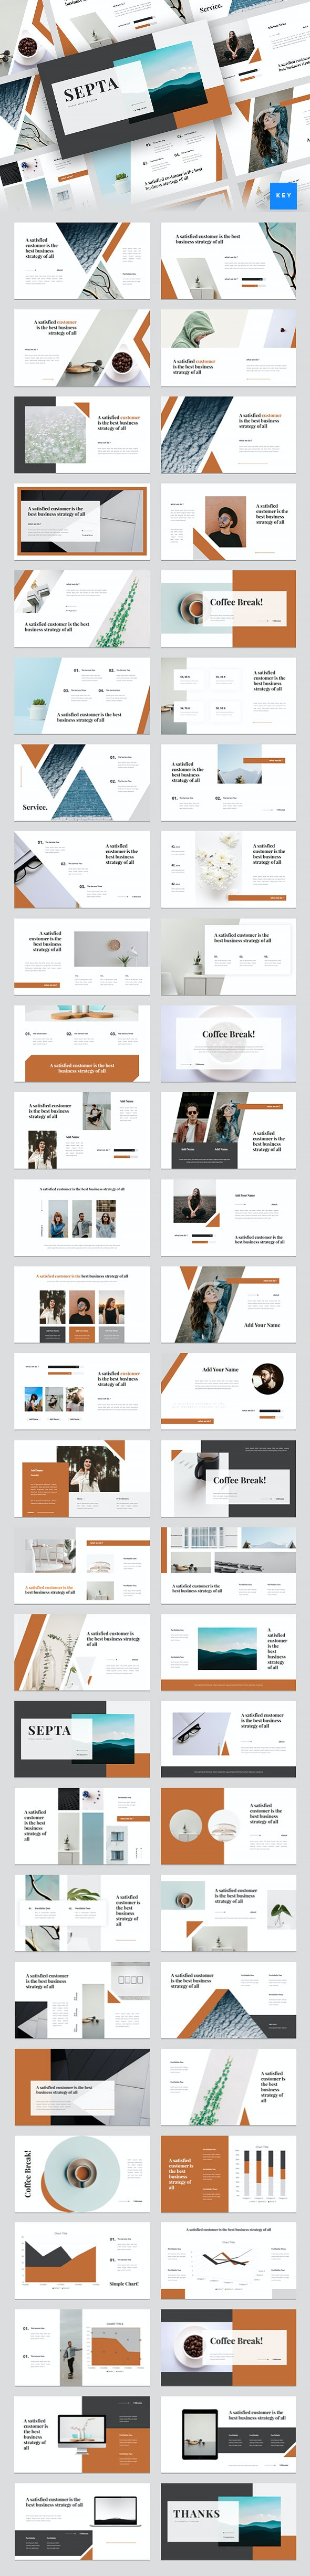 Septa - Clean Keynote Template - Creative Keynote Templates